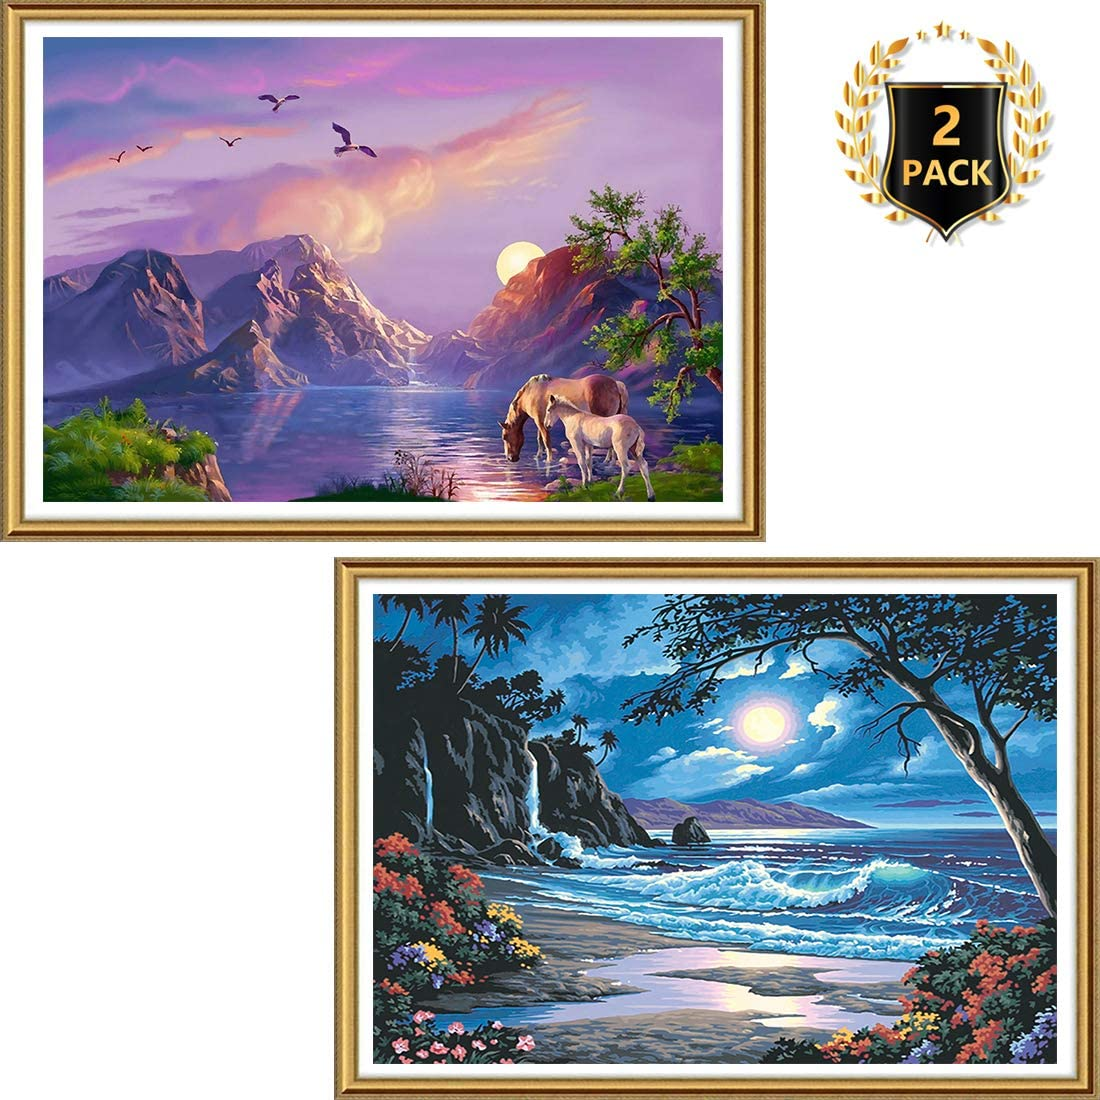 Yomiie 5D Full Drill Diamond Painting Valley Lake & Moonlit Seaside by Number Kits, Landscape Paint with Diamond Art Rhinestone Embroidery Cross Stitch DIY Craft Decor (12x16inch, 2 Pack) a143